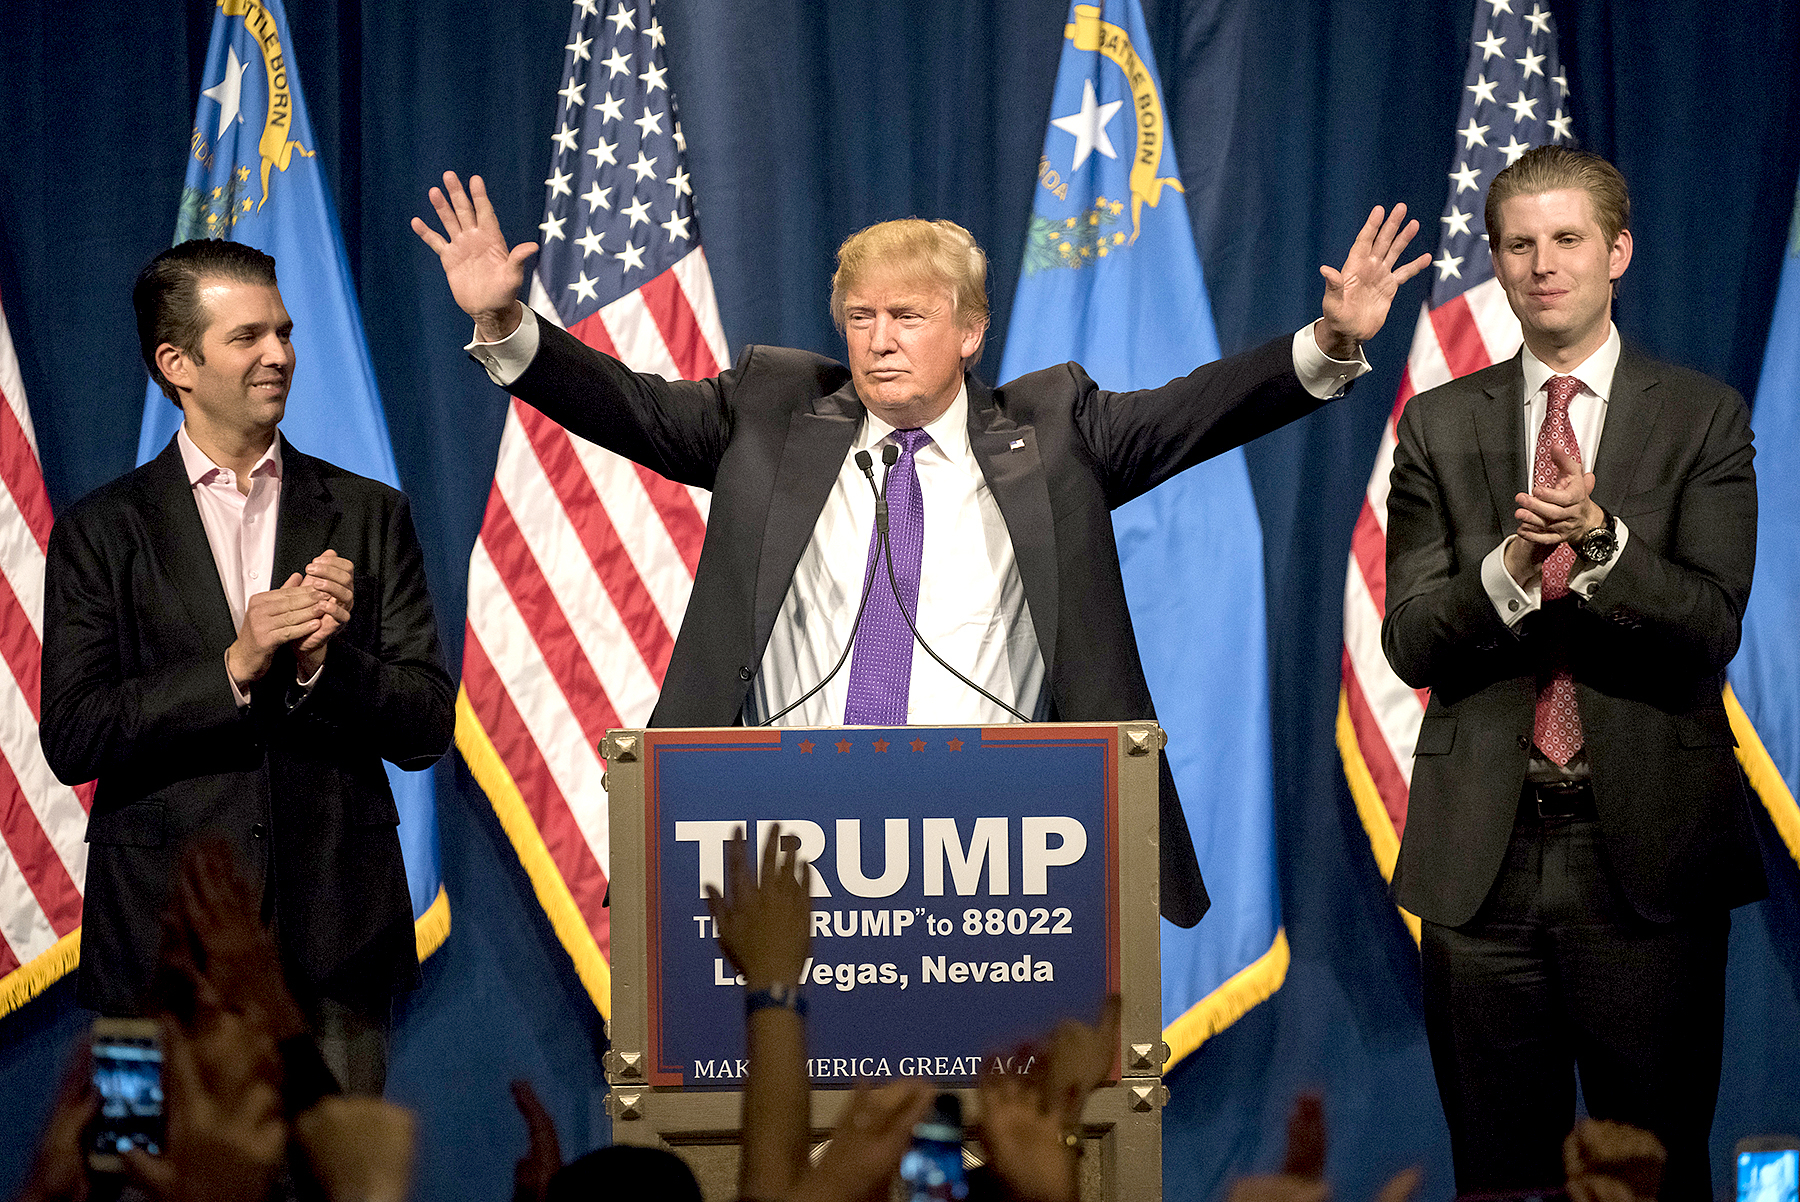 Donald Trump, center, gestures as his sons Donald Trump Jr., left, and Eric Trump, right, applaud during a caucus night rally in Las Vegas on Tuesday, Feb. 23, 2016.